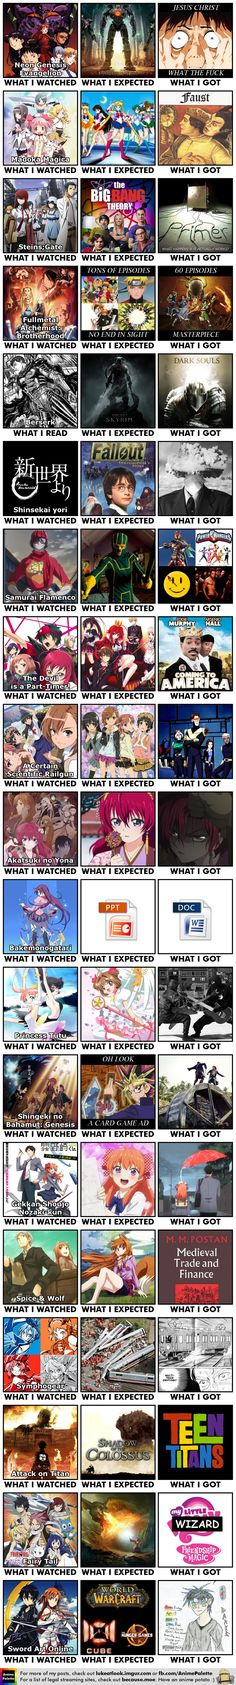 What I Watched - What I Expected - What I Got - Imgur